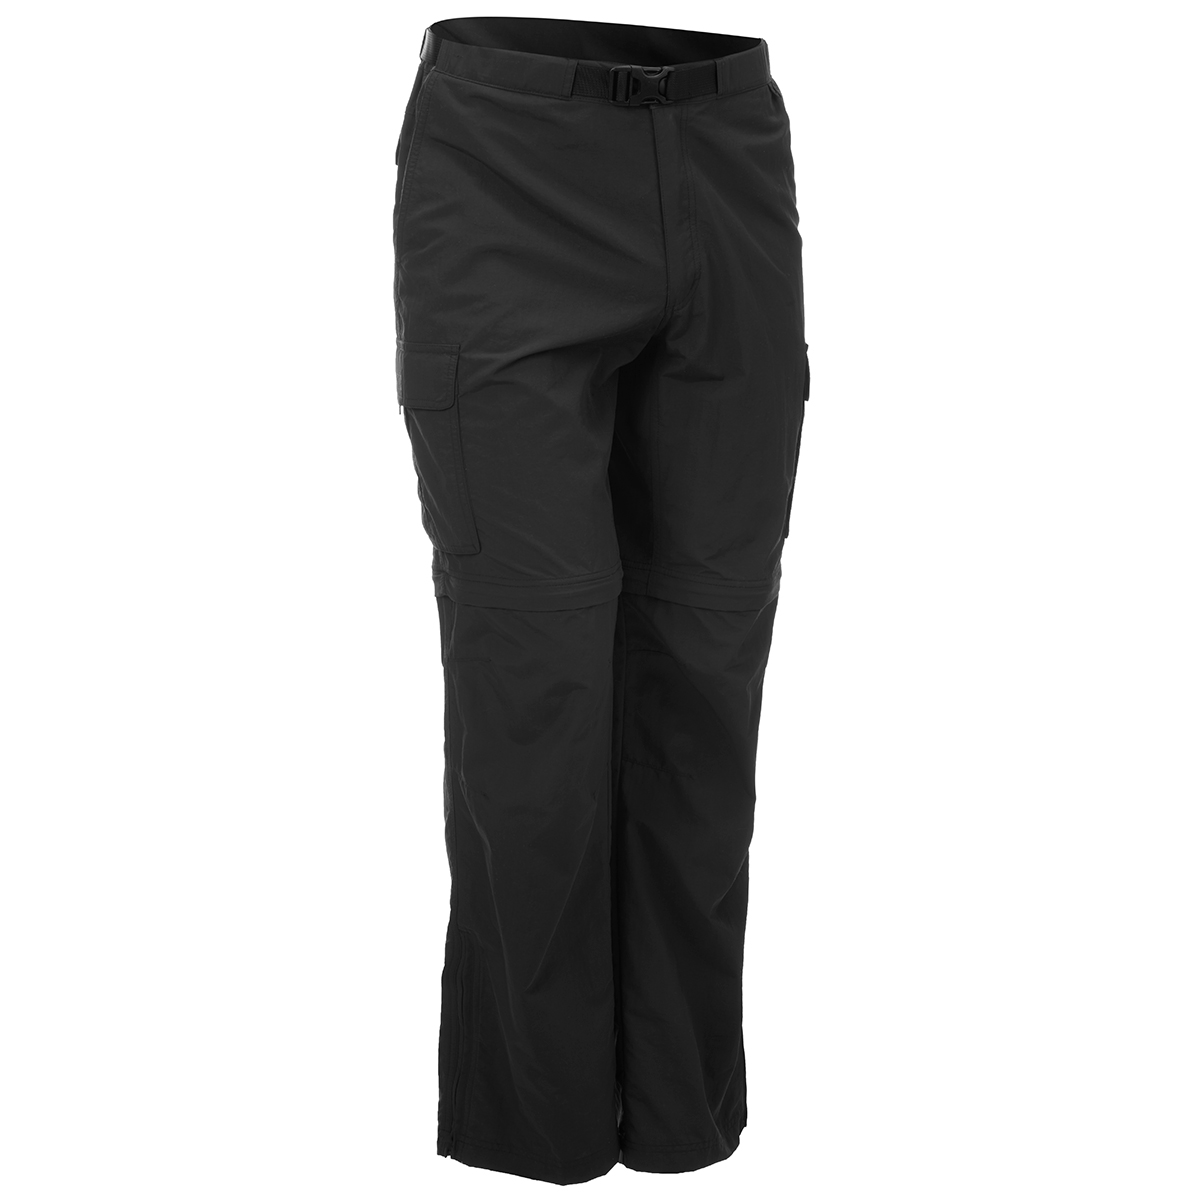 Ems Men's Camp Cargo Zip-Off Pants - Black, 32/30